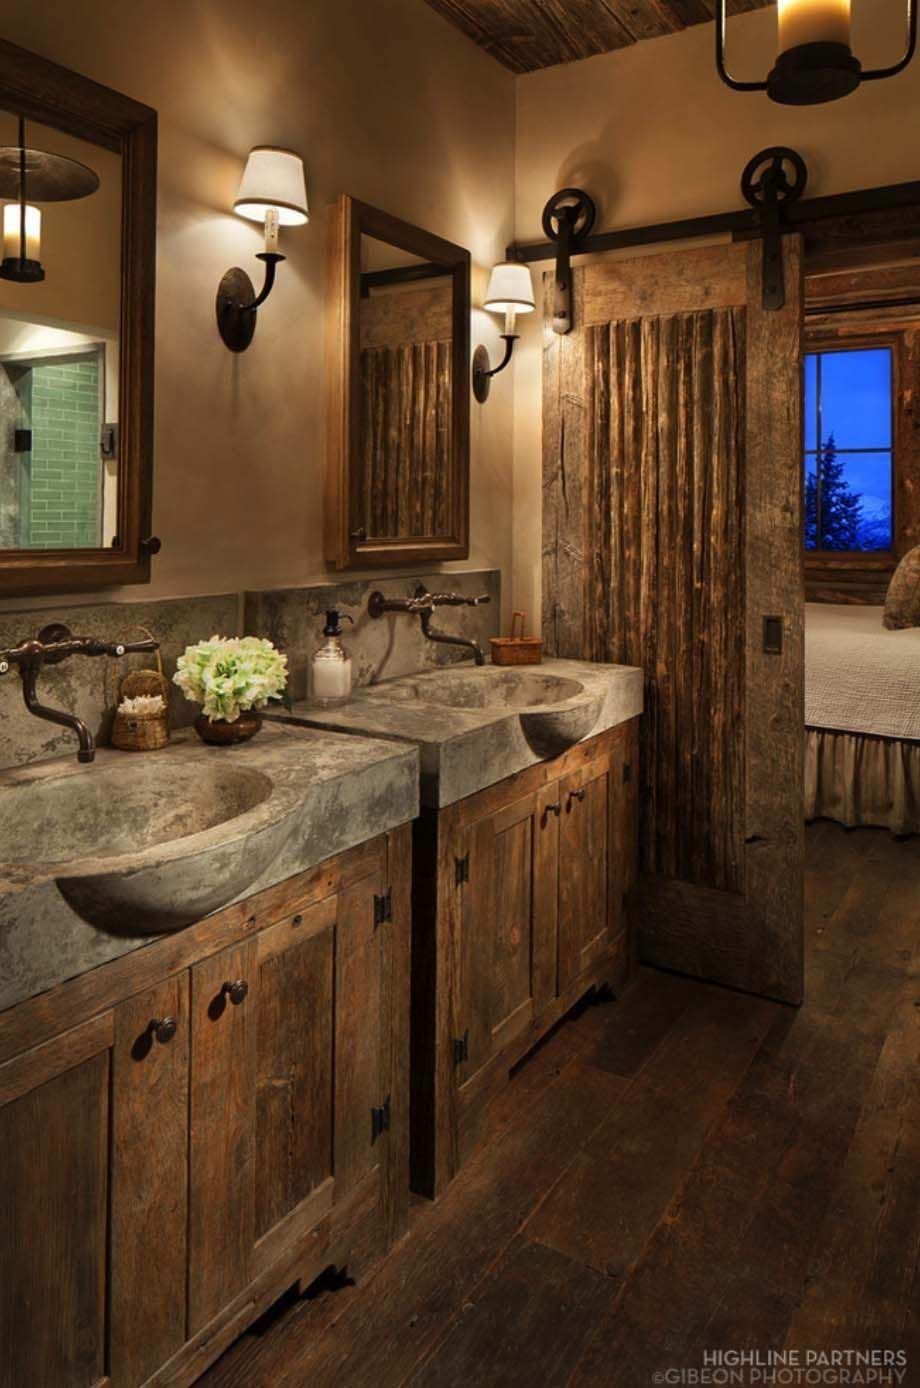 40 Spectacular Stone Bathroom Design Ideas: 31 Gorgeous Rustic Bathroom Decor Ideas To Try At Home